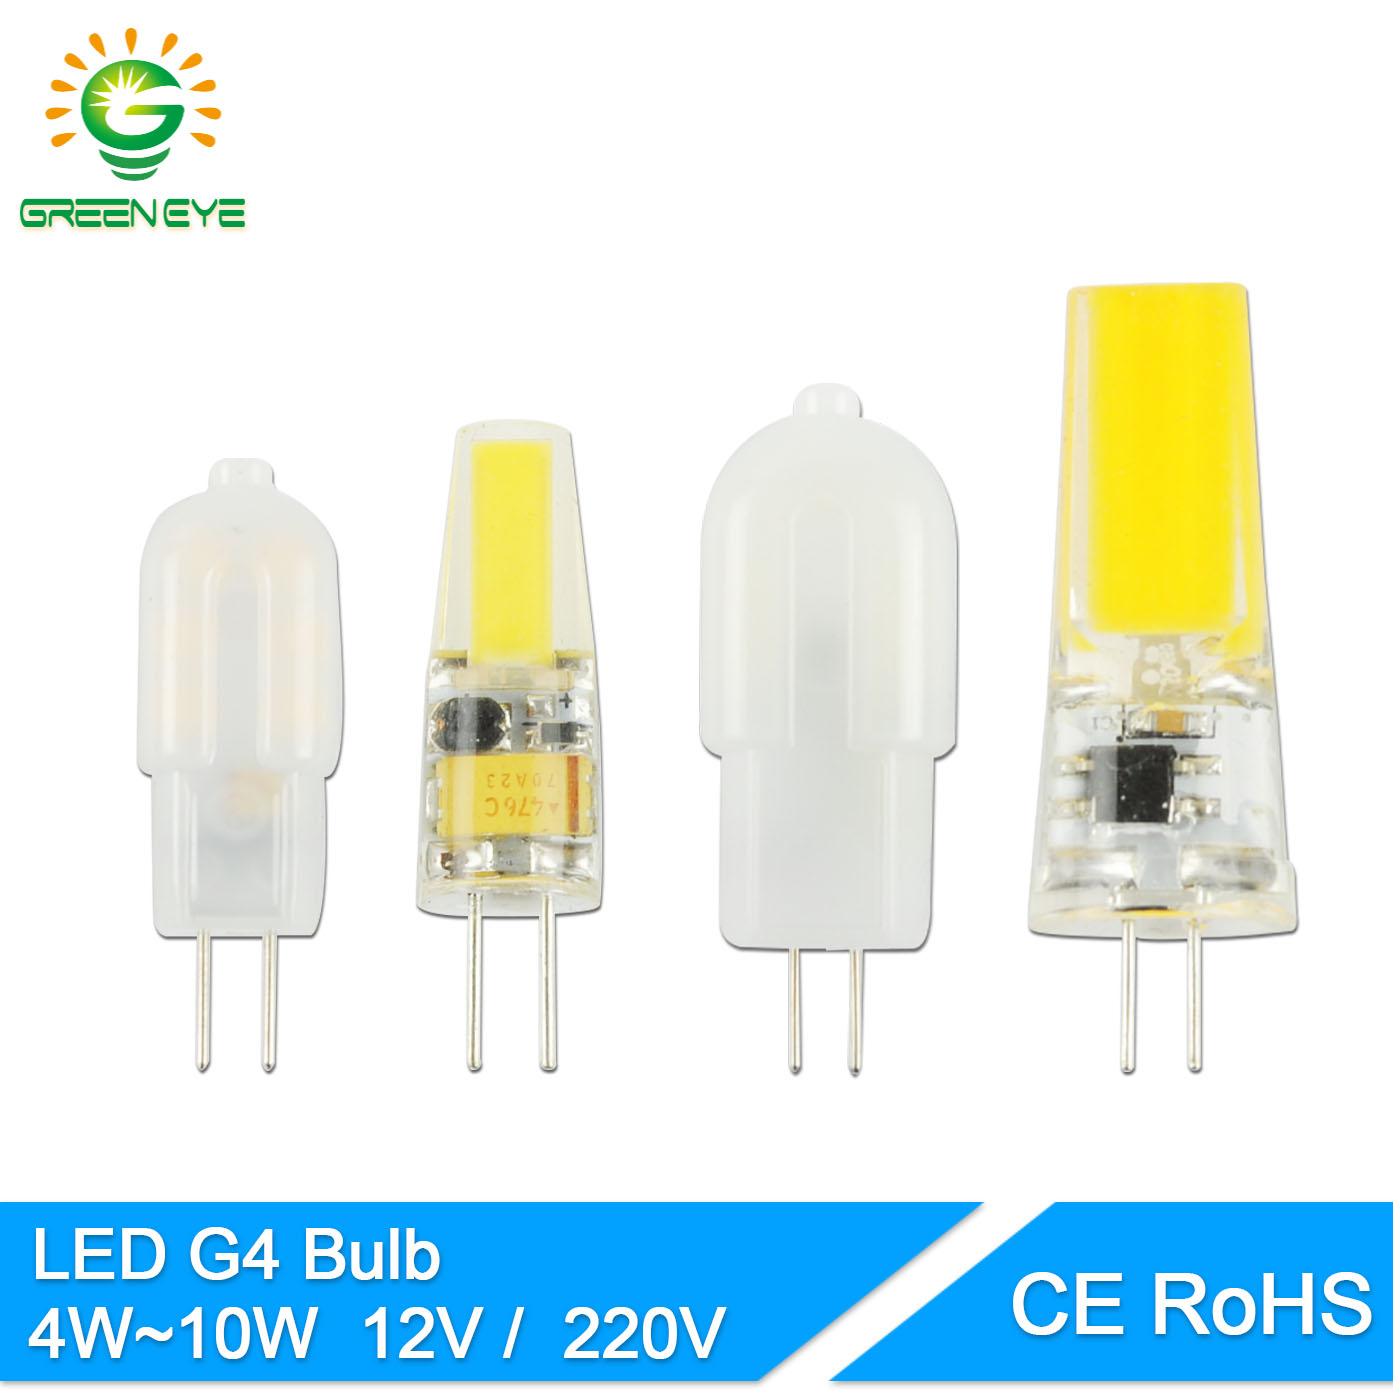 greeneye cob g4 led bulb acdc 12v ac220v 4w 6w 10w led g4 lamp crystal led light bulb lampada. Black Bedroom Furniture Sets. Home Design Ideas